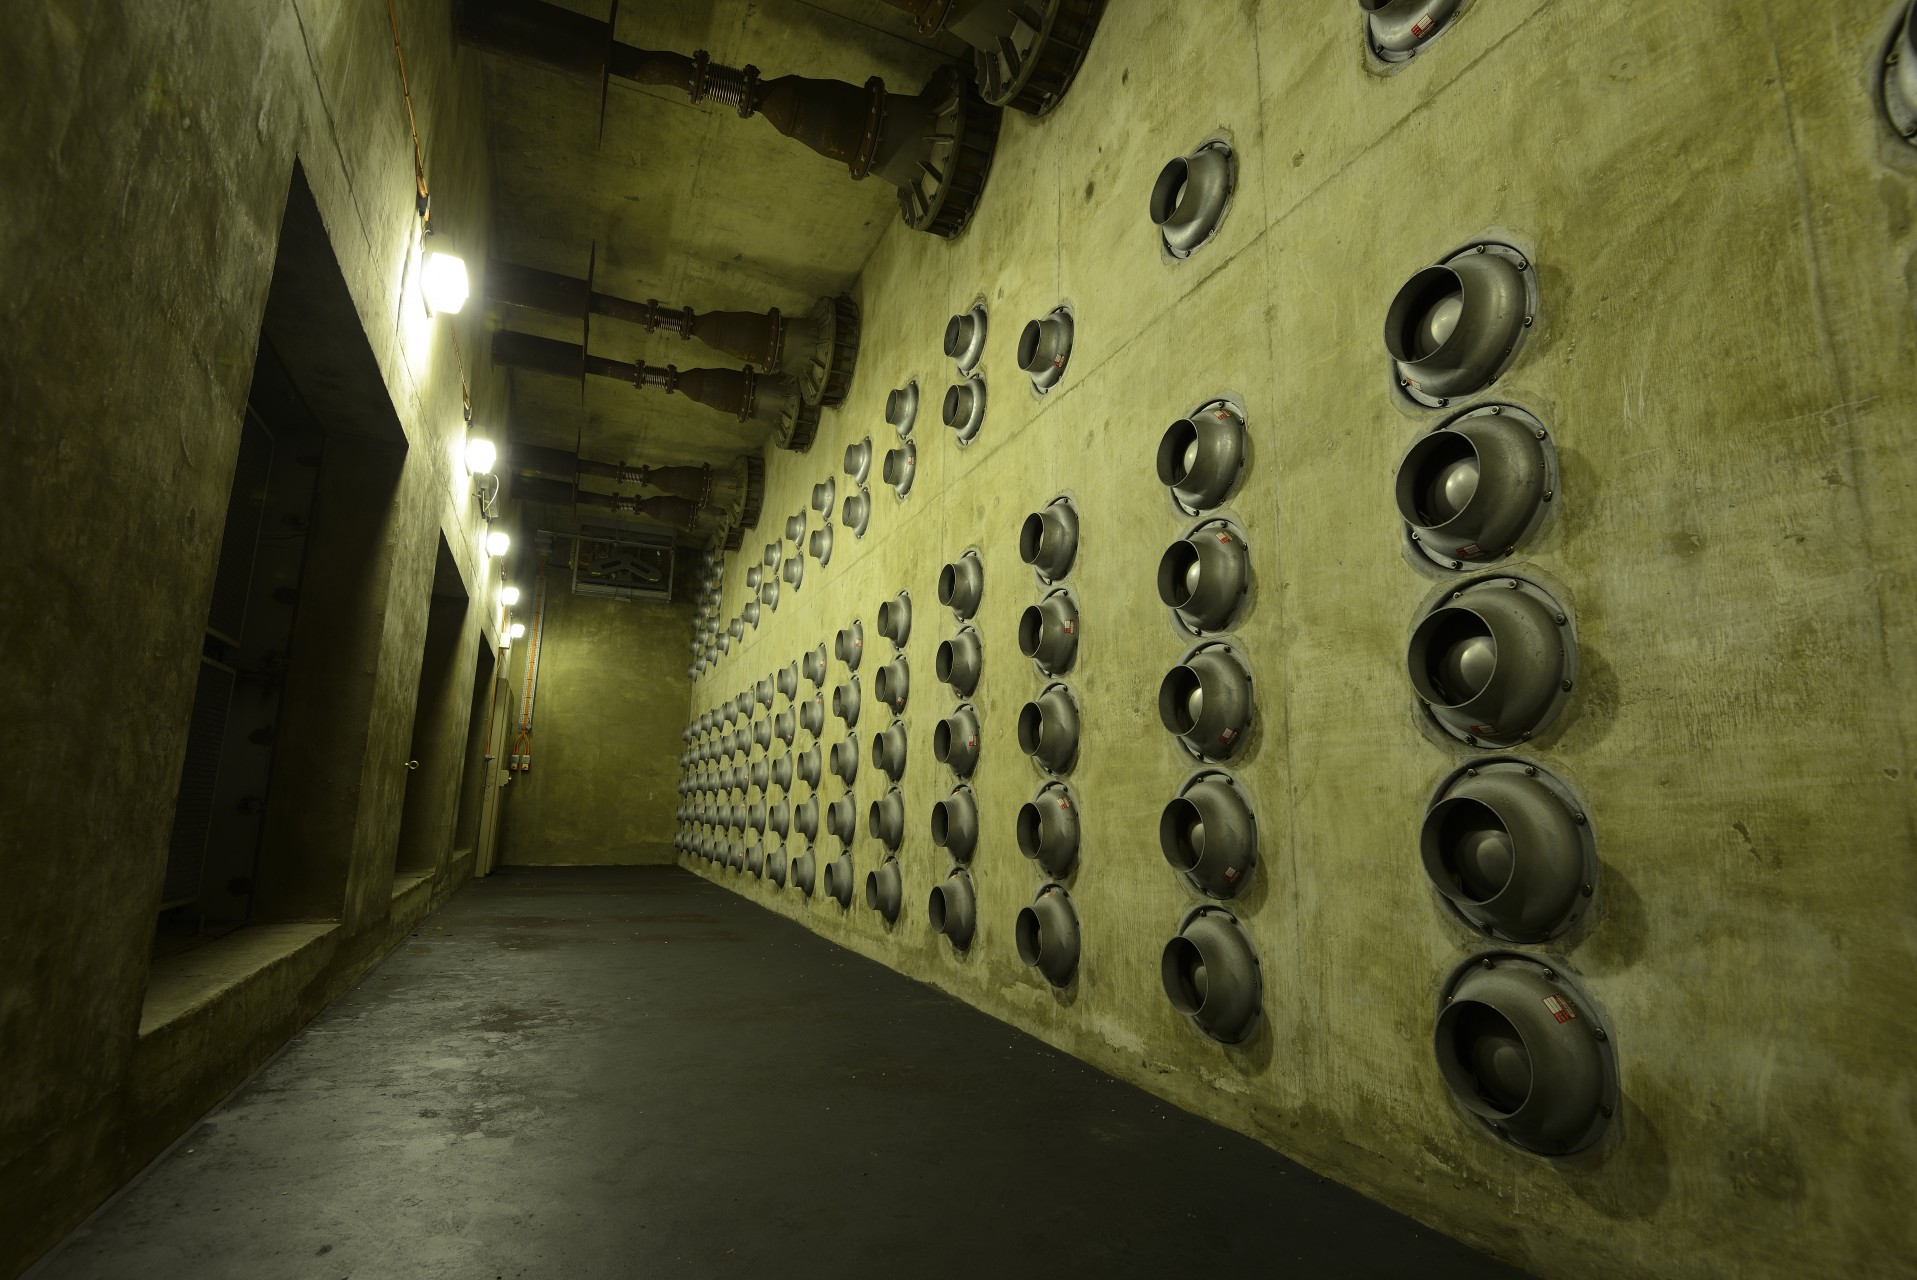 R3 Nuclear Bunker - Air Exhausters